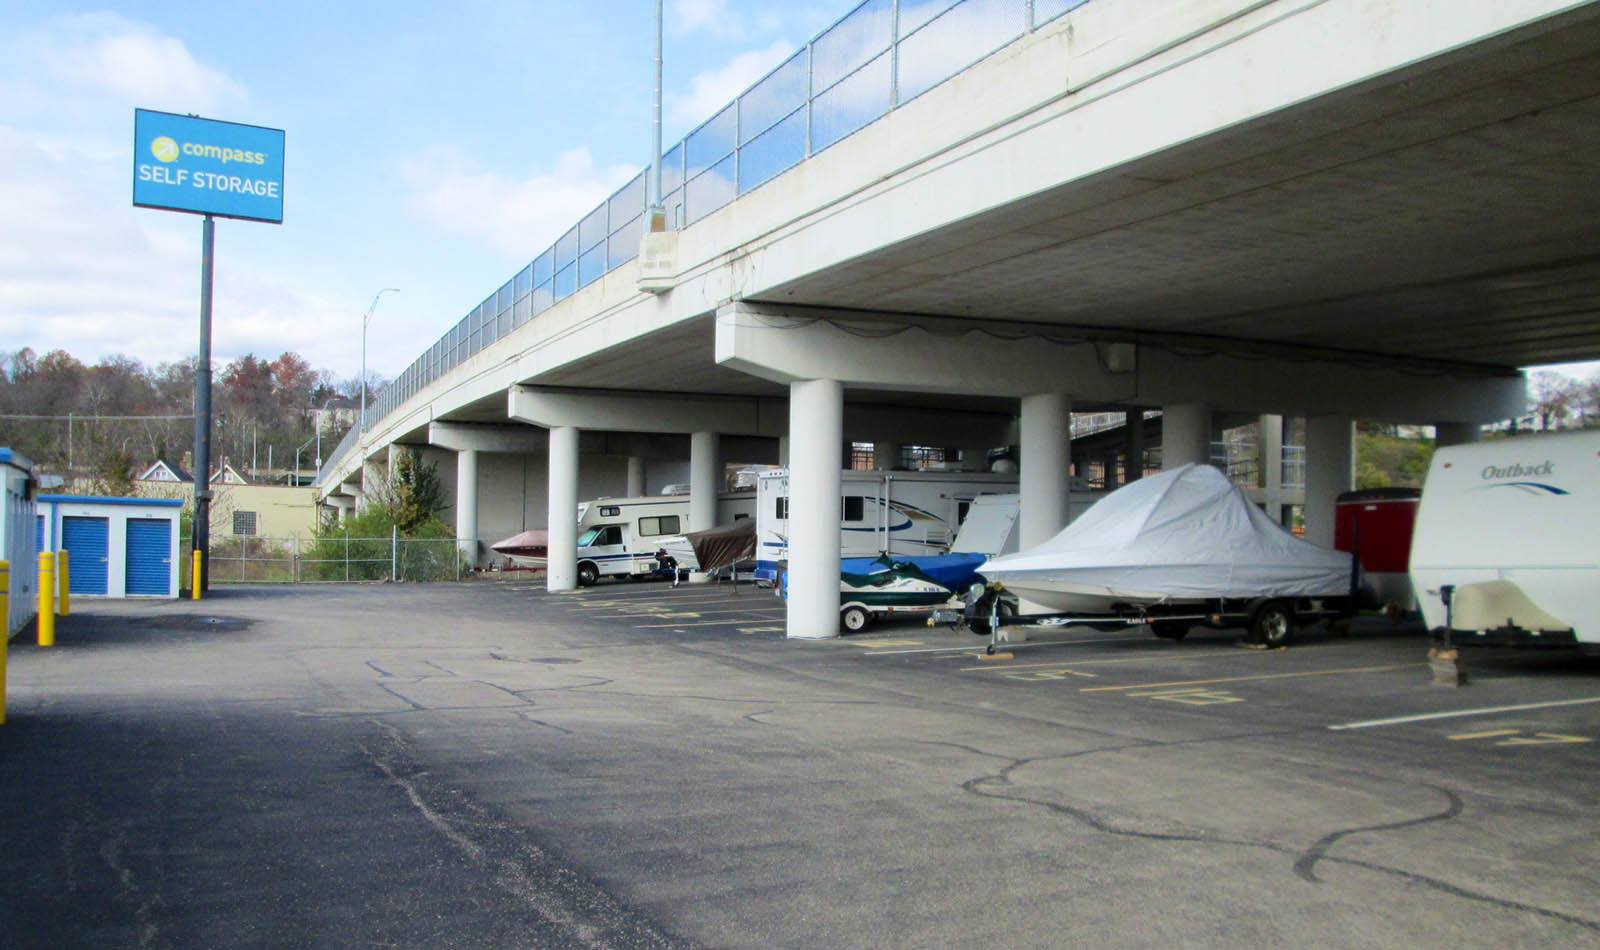 Boat Parking at Compass Self Storage in Cincinnati, OH